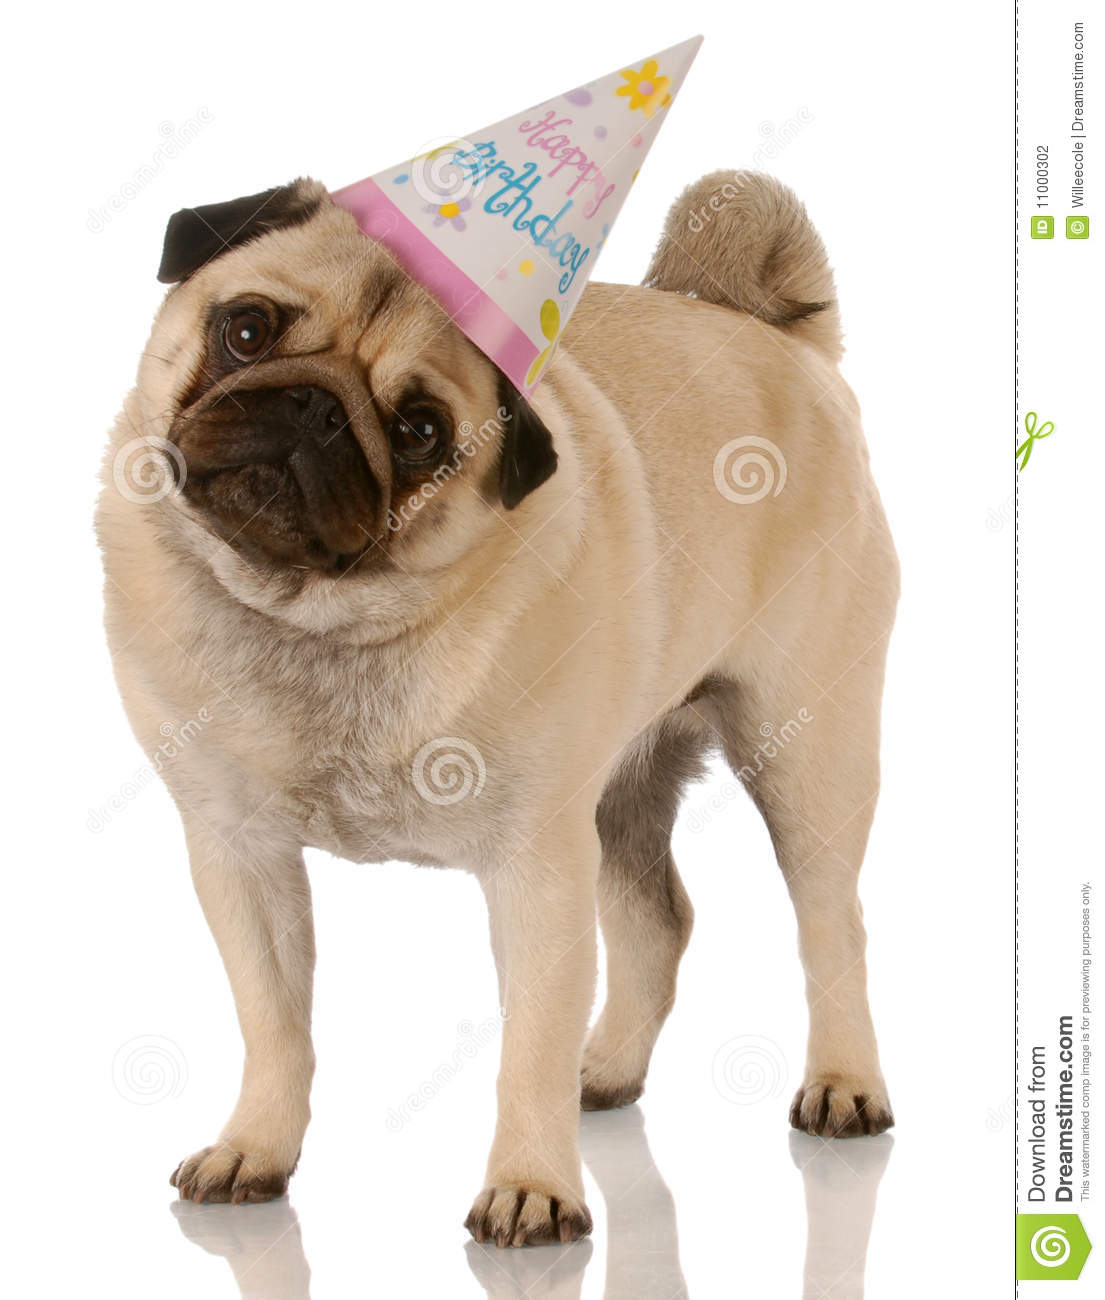 Birthday Images That Are Free Of Dog Wearing Sun Glasses